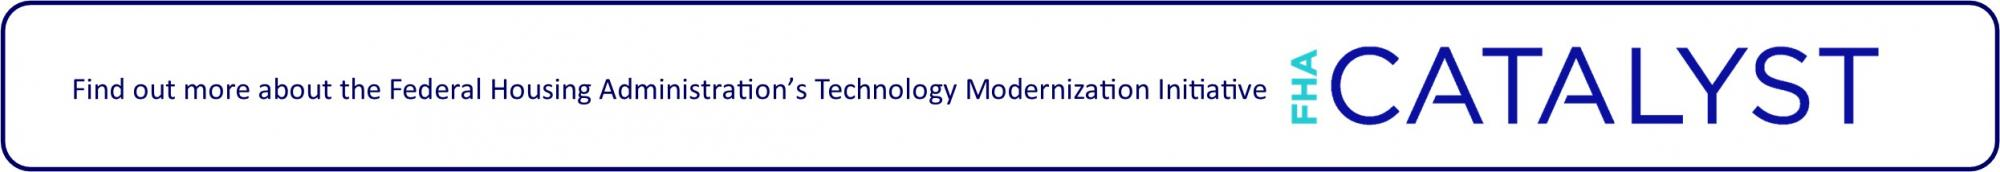 Find out more about FHA's technology modernization initiative FHA Catalyst